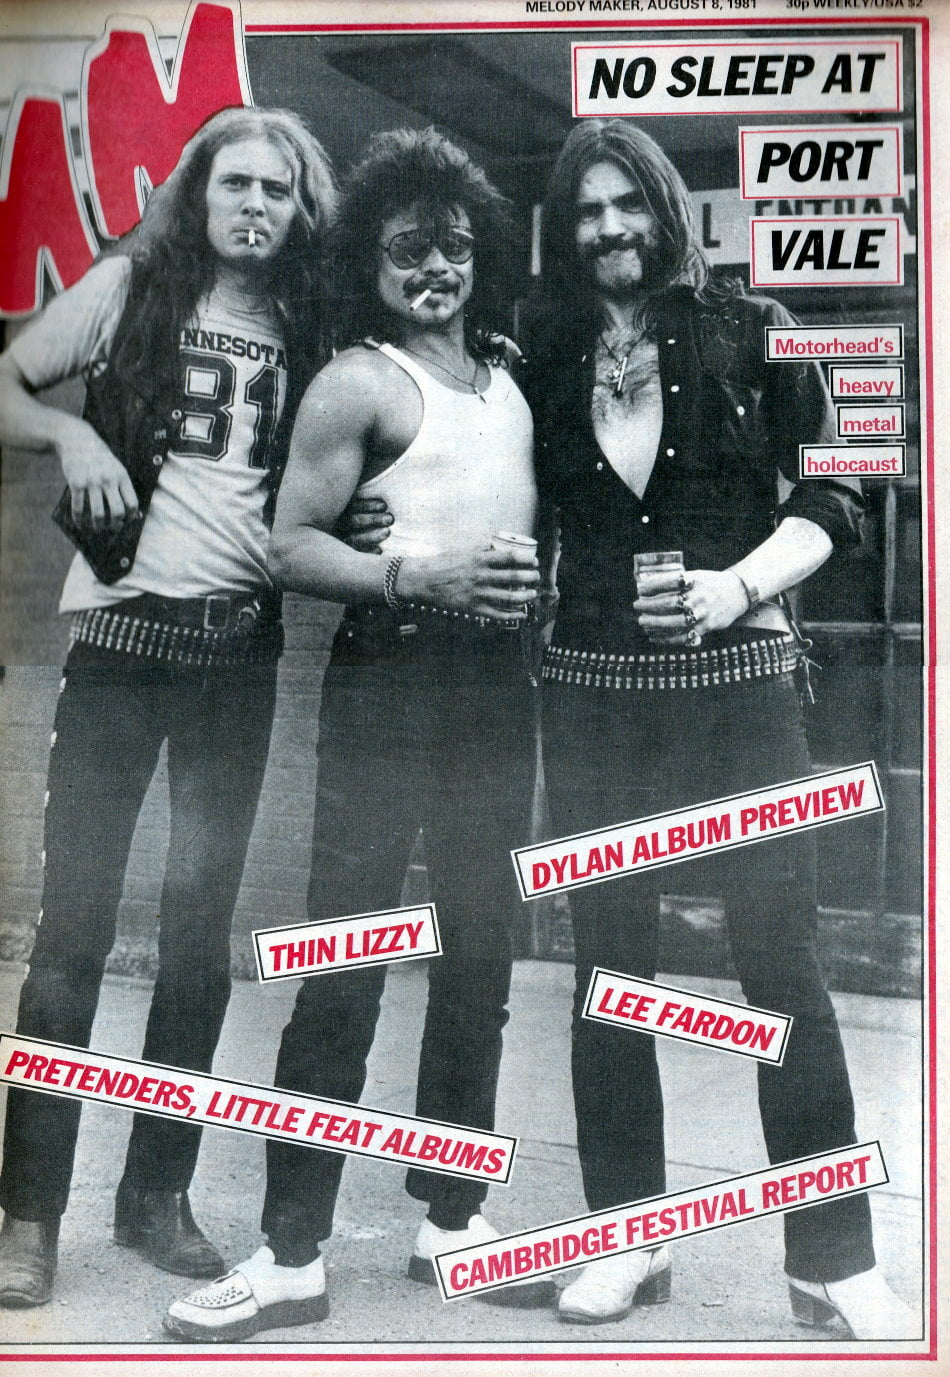 Melody Maker front cover on the Port Vale Heavymetal Holocaust concert